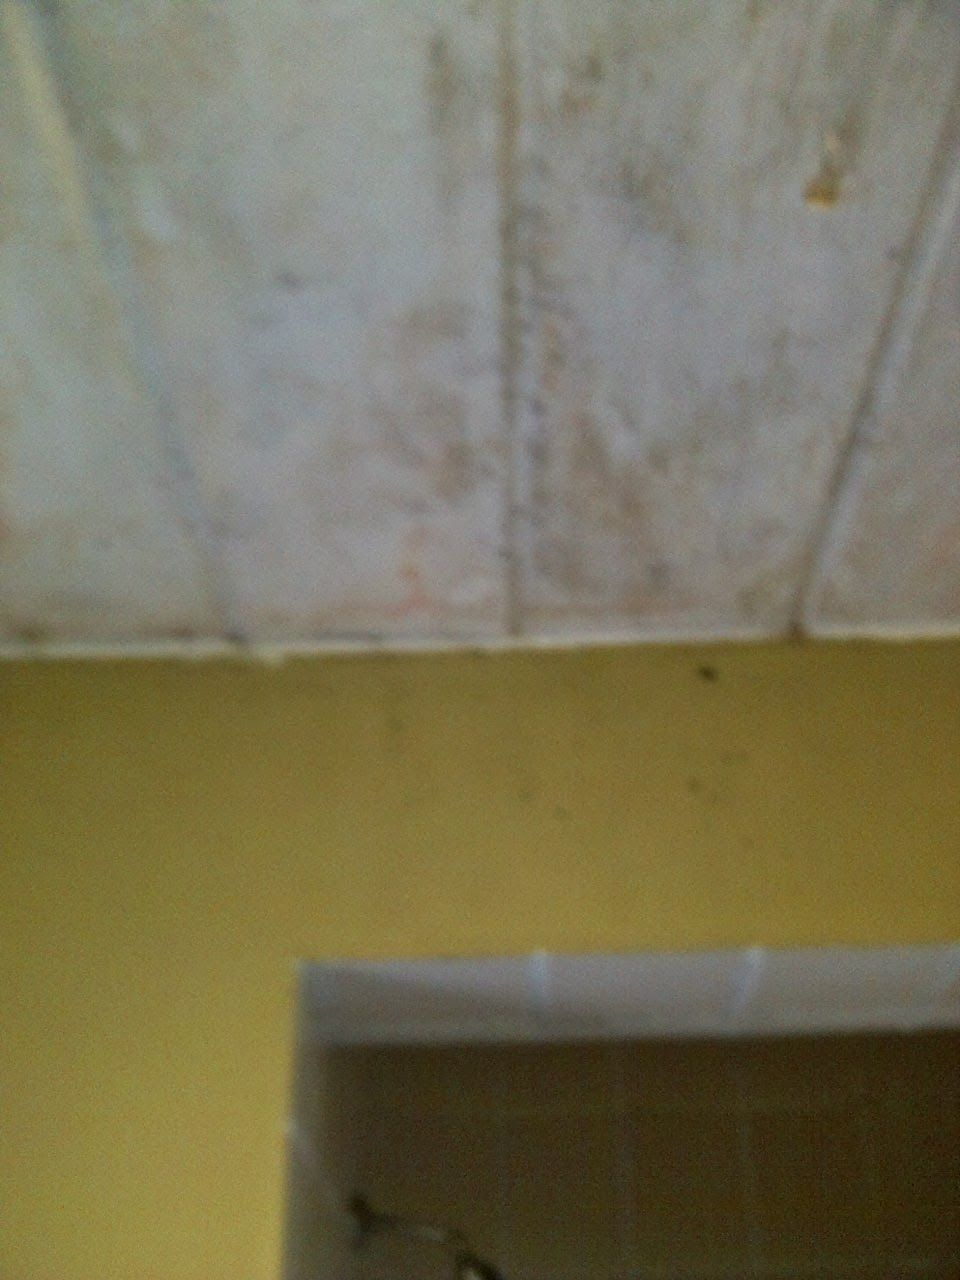 Bathroom Bathroom Shower How Does Mould Grow What Is Mould Effects Of Mould Mould Bathroom Mould Mildew Mold In Bathroom Bathroom Ceiling Mildew Remover